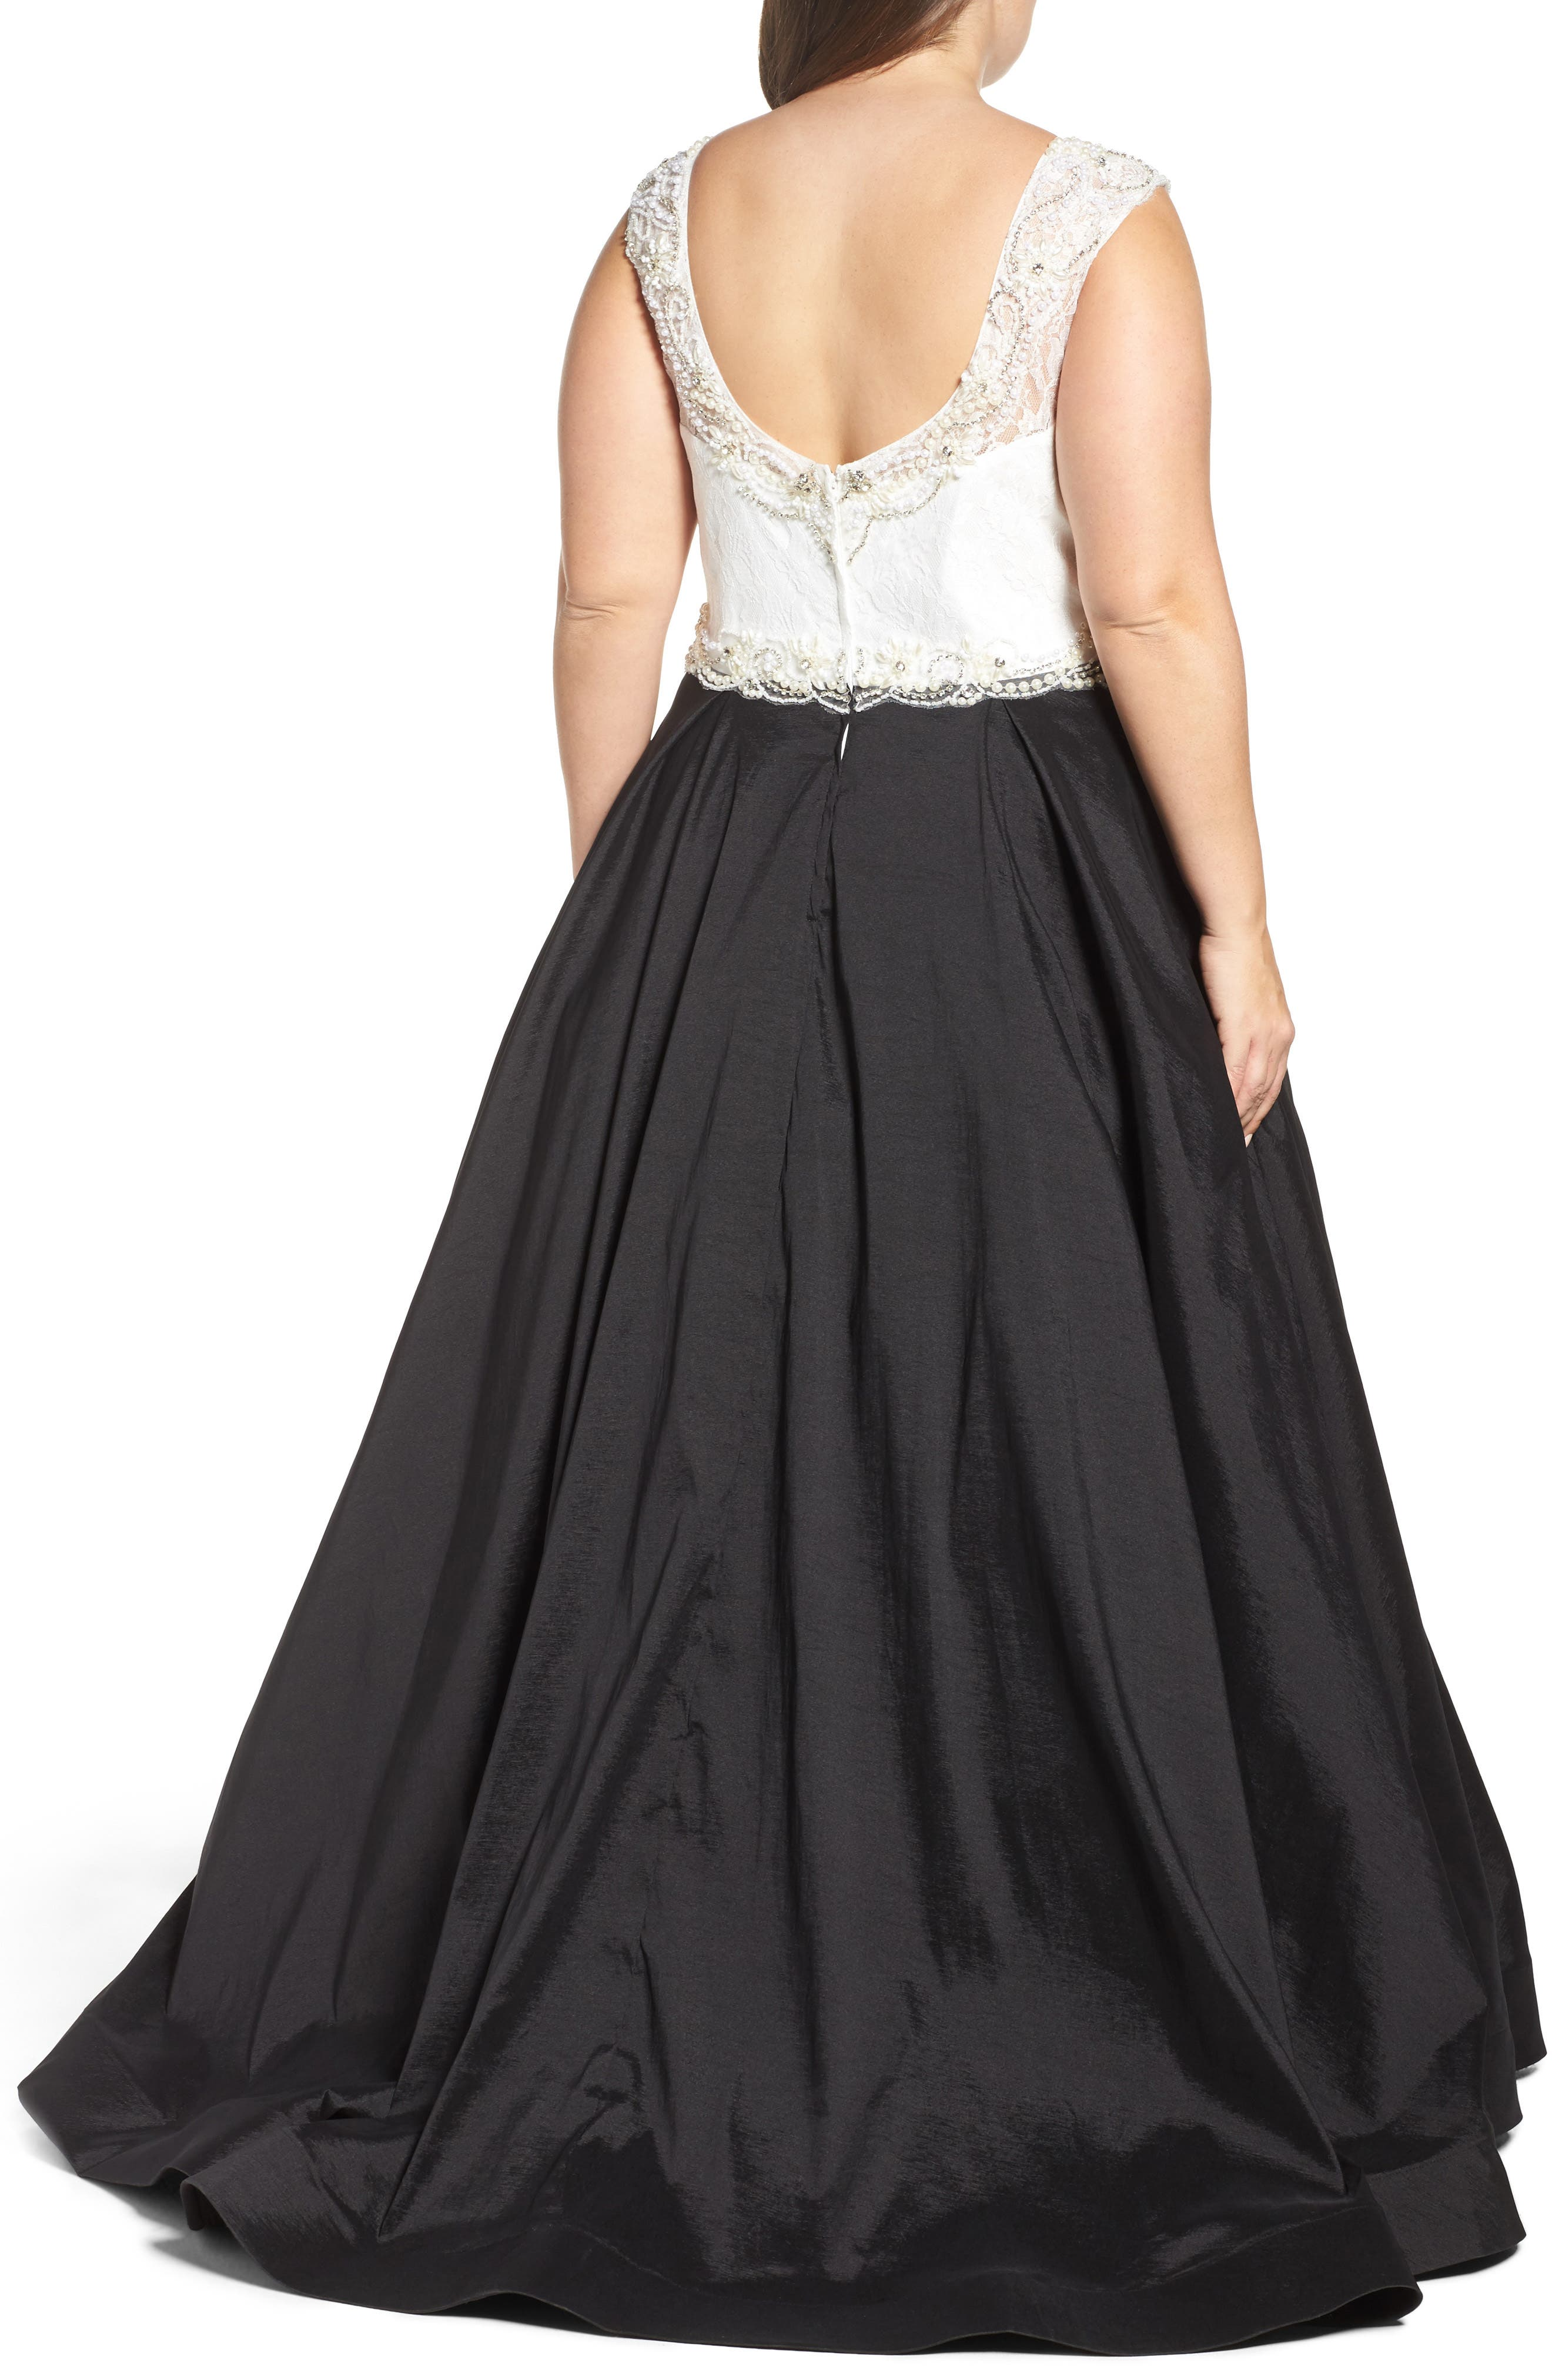 Embellished Lace & Taffeta Ballgown,                             Alternate thumbnail 2, color,                             Black White